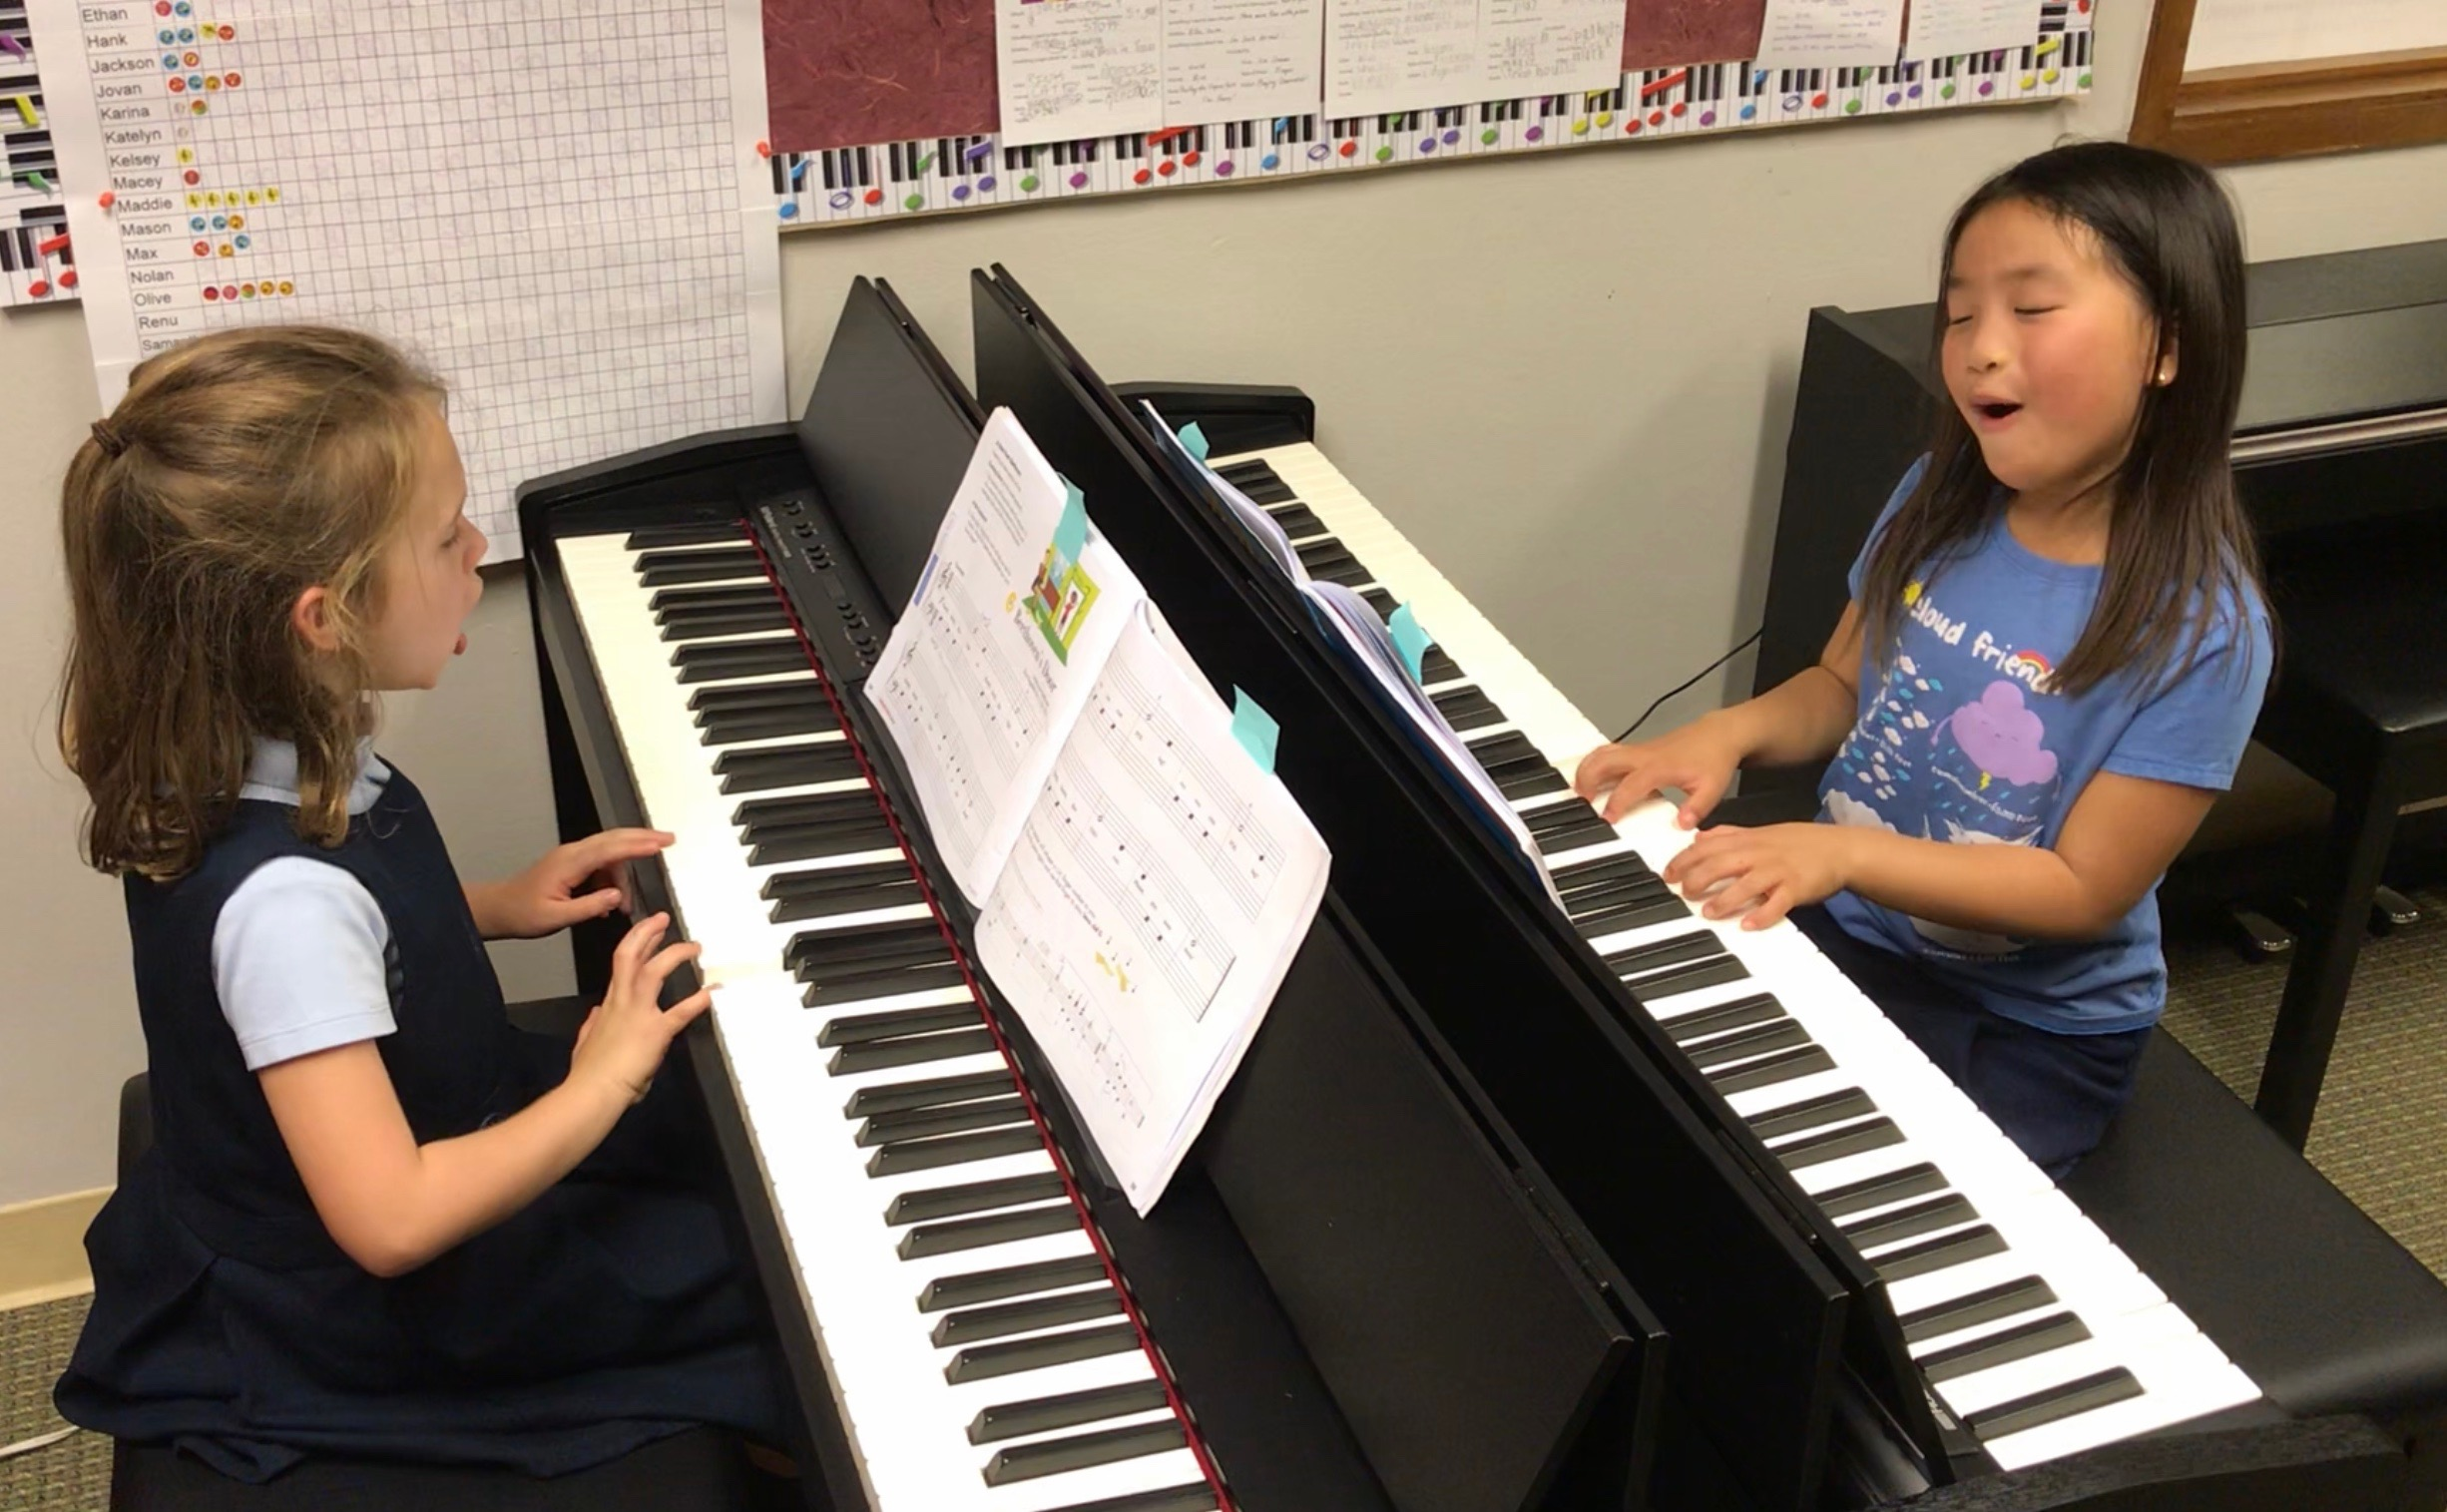 We take pride in helping our students develop a wide array of musical skills, including improvisation, composition, ensemble playing, and performance. Classes are tailored to inspire and motivate students - we make learning as exciting and fun as it can be! -